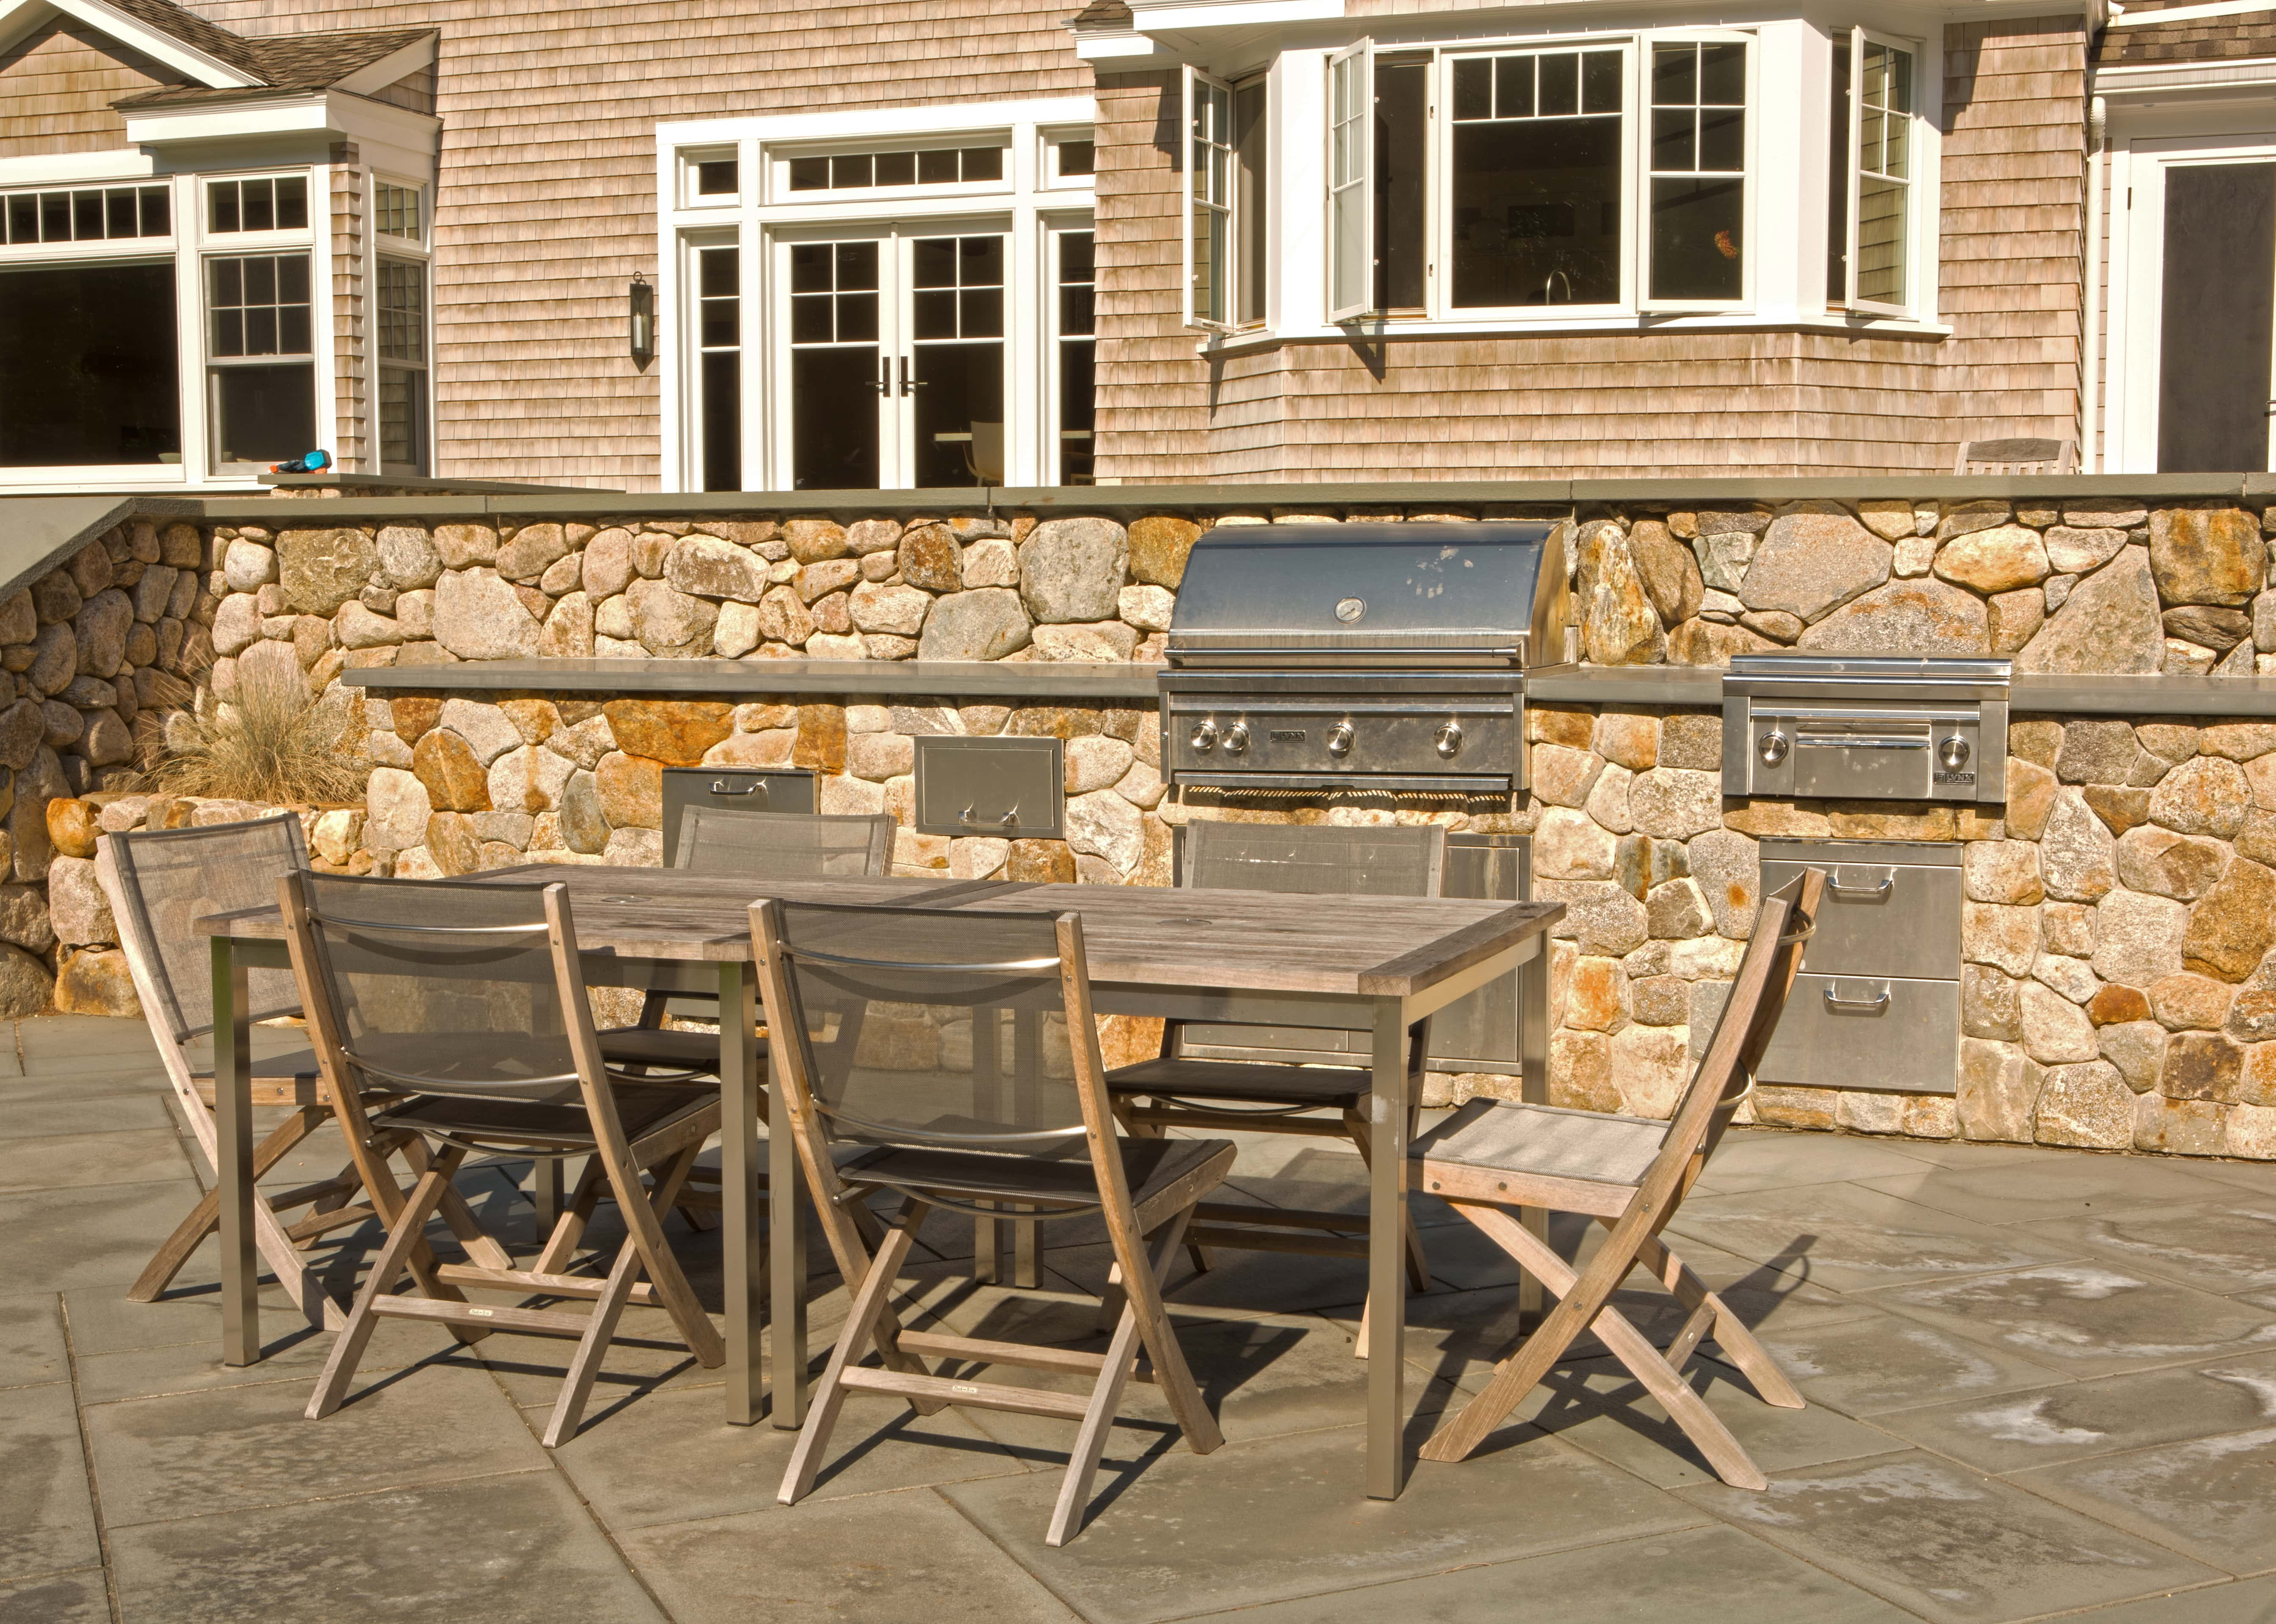 Outdoor Kitchens » Seoane Landscaping